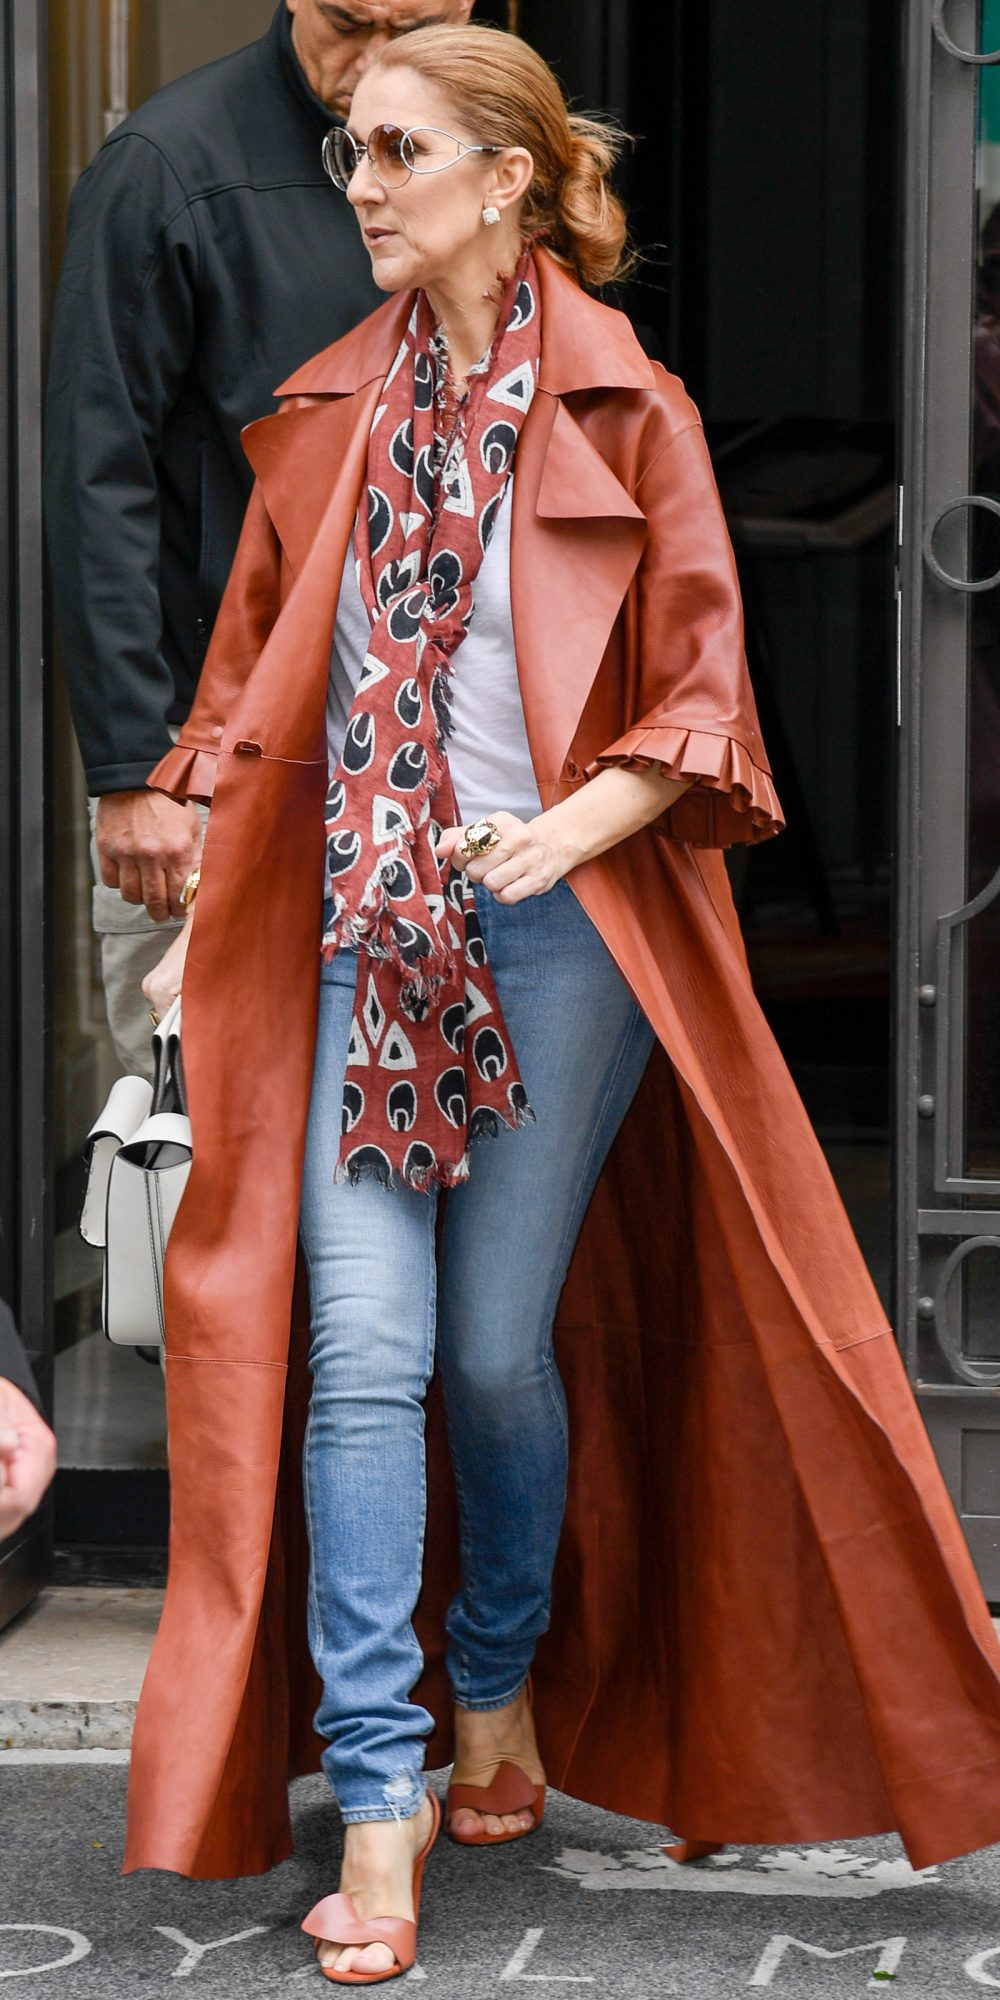 IN A BRICK RED LEATHER COAT